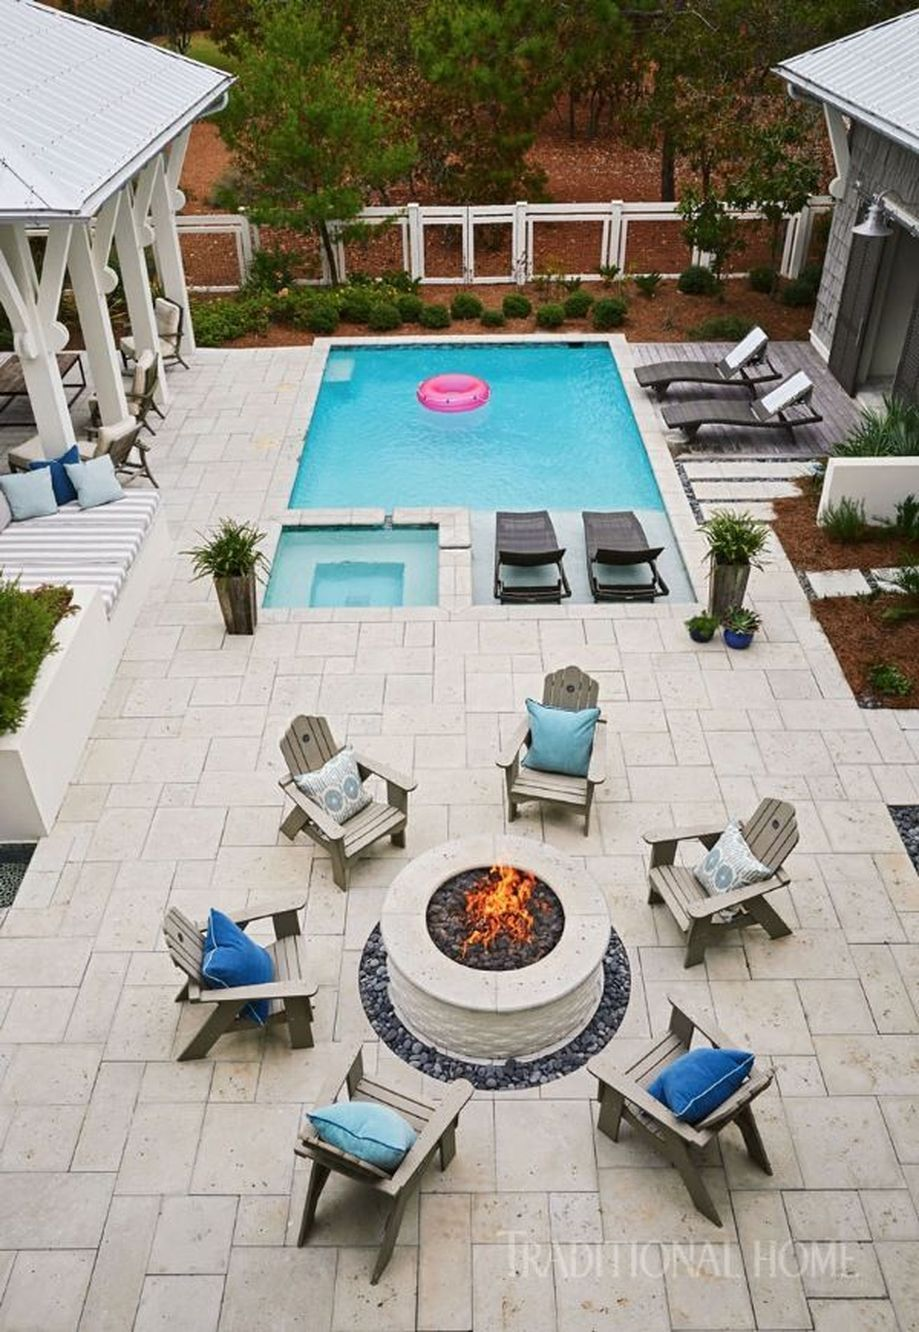 This is awesome small pool design for home backyard 60 image you can read and see another amazing image ideas on awesome small pool design ideas for home